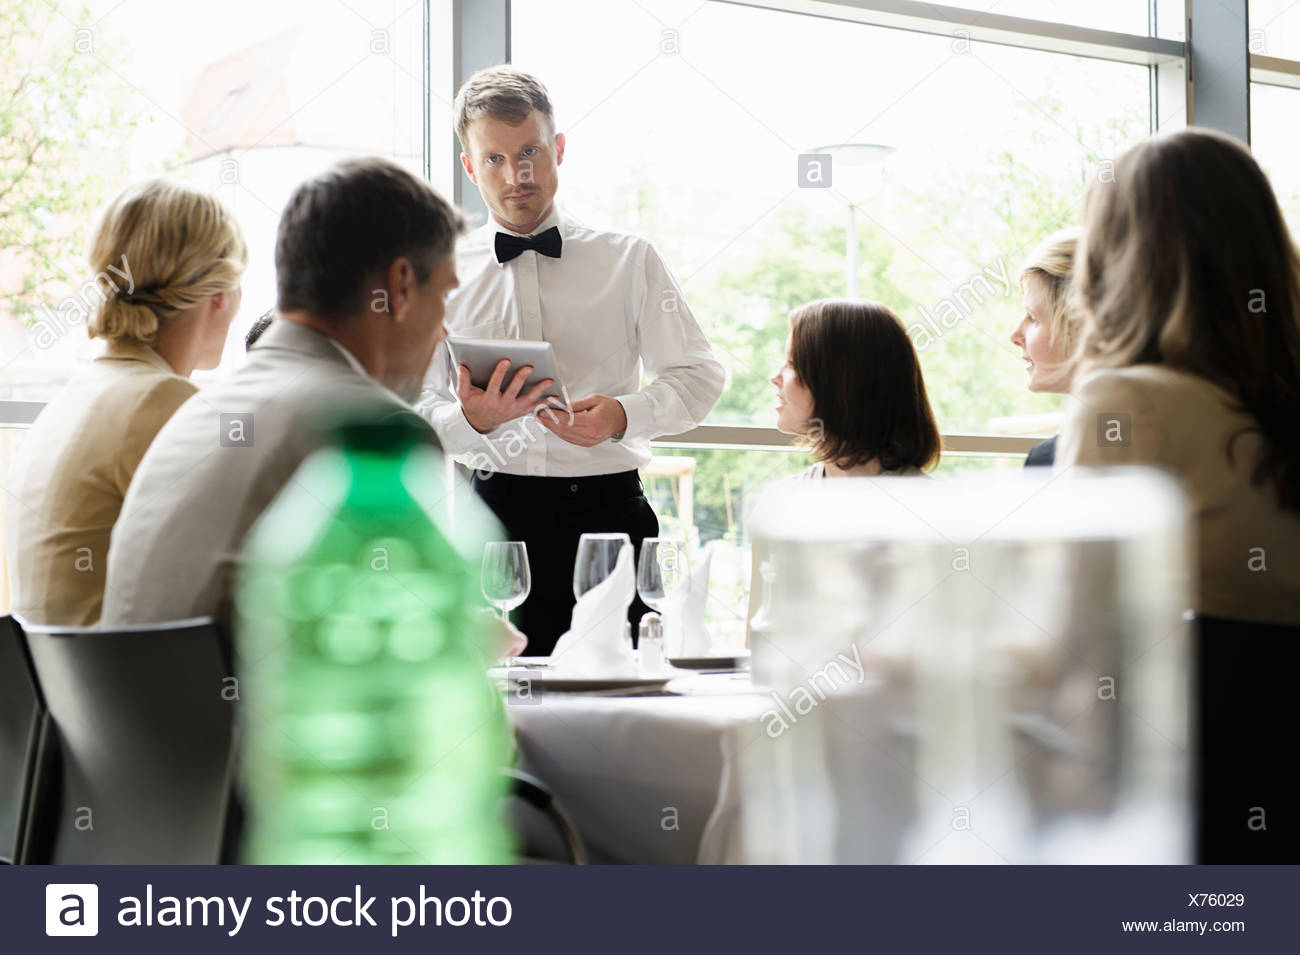 Waiter taking order with tablet computer - Stock Image